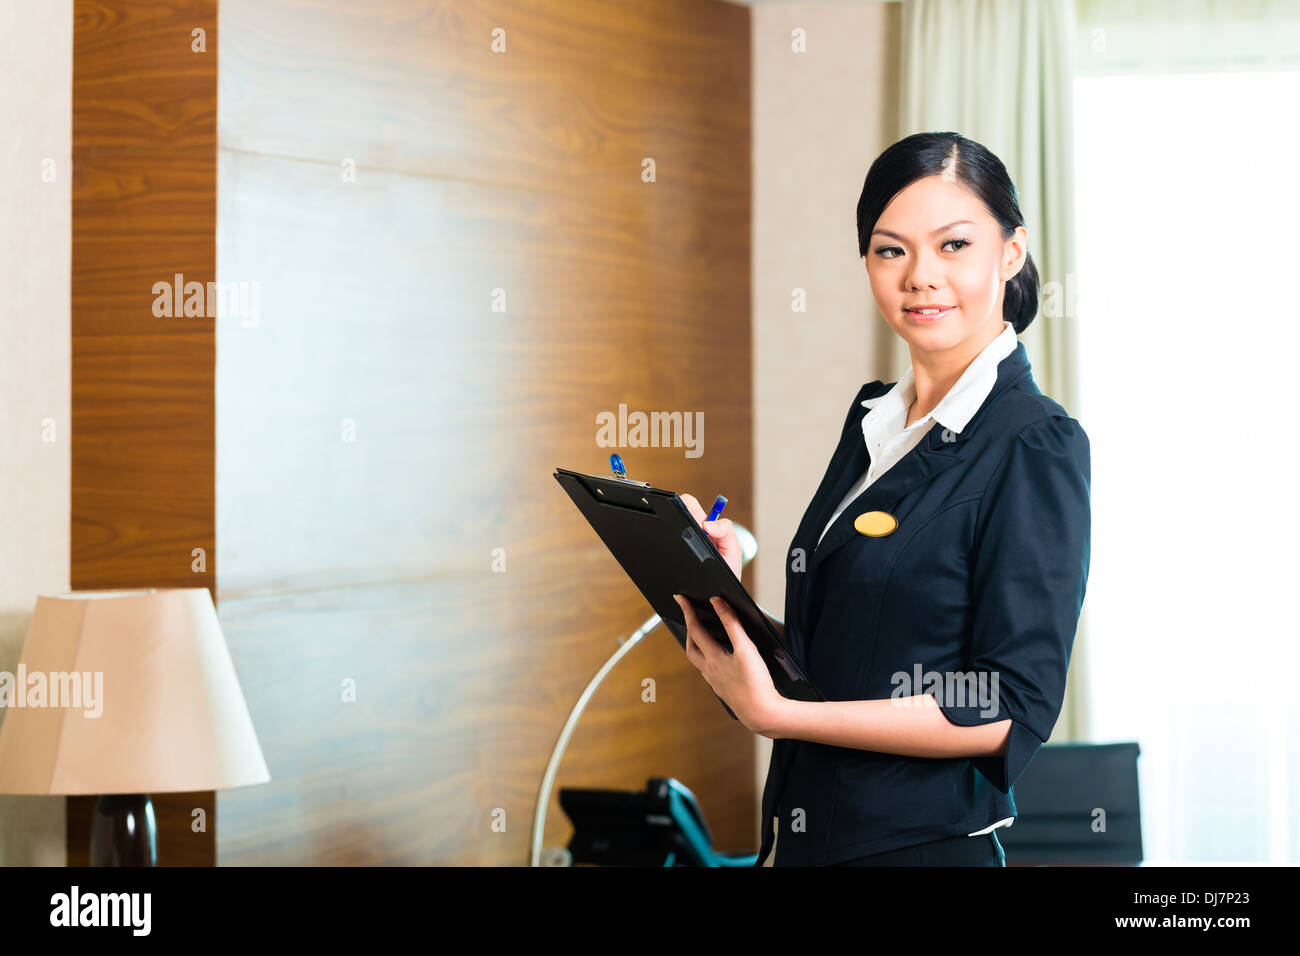 housekeeping manager or assistant controlling or checking the room